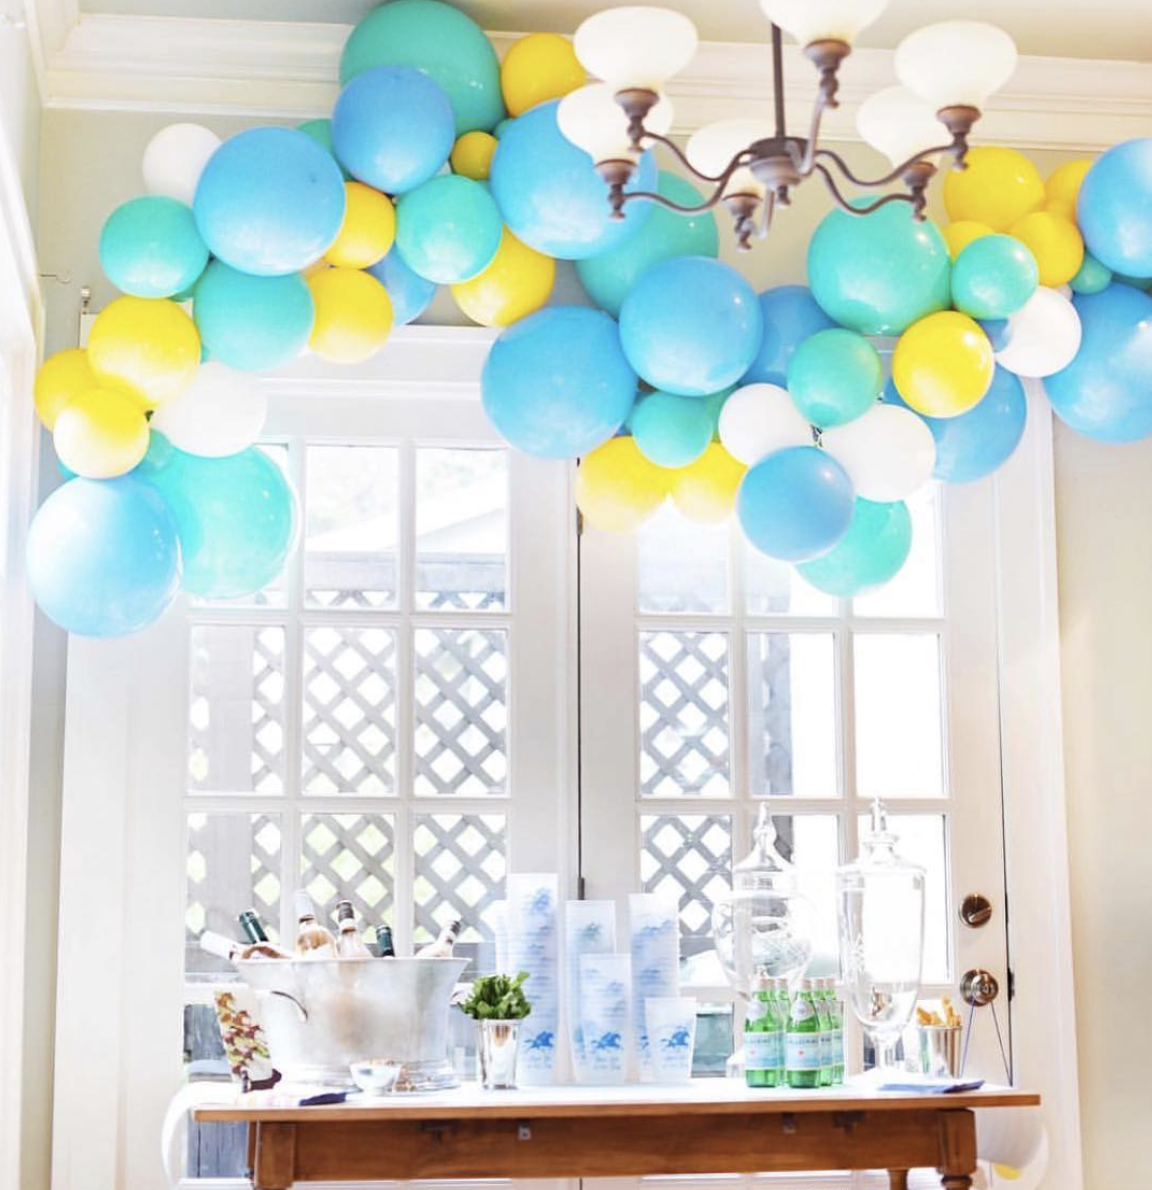 vroom_vroom_balloon_40th_birthday_organic_balloon_garland.png